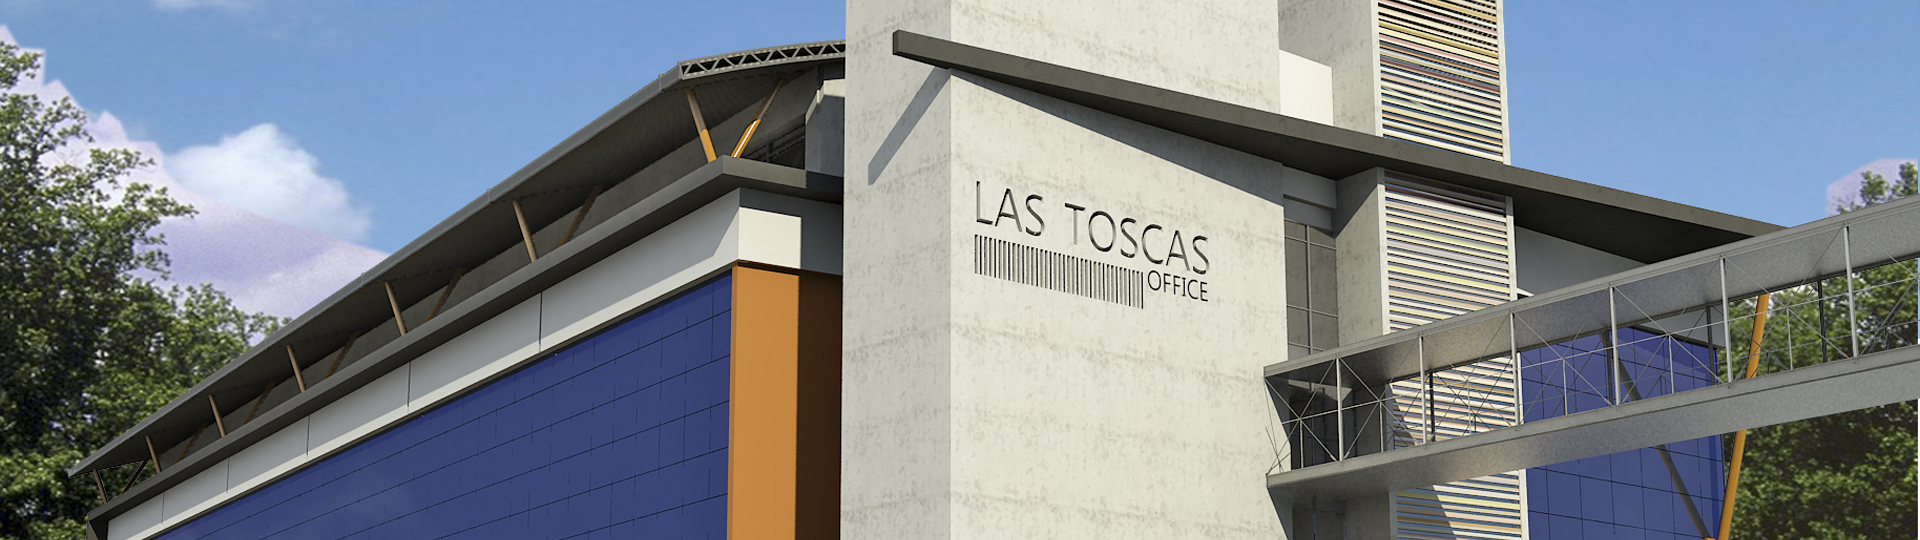 toscas-office